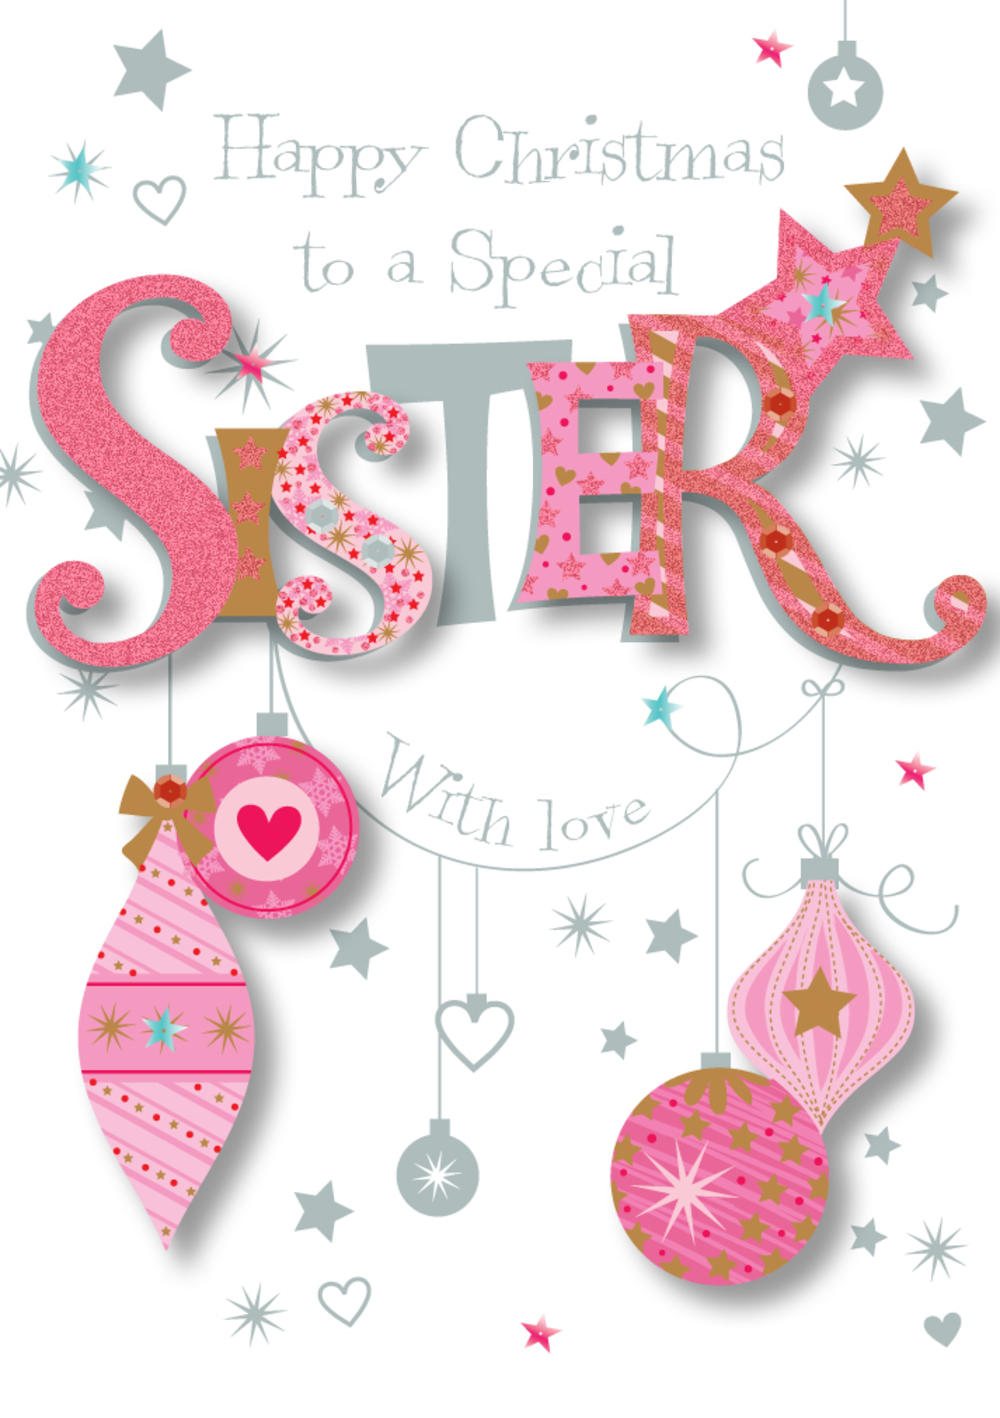 Special sister happy christmas greeting card cards love kates special sister happy christmas greeting card kristyandbryce Images